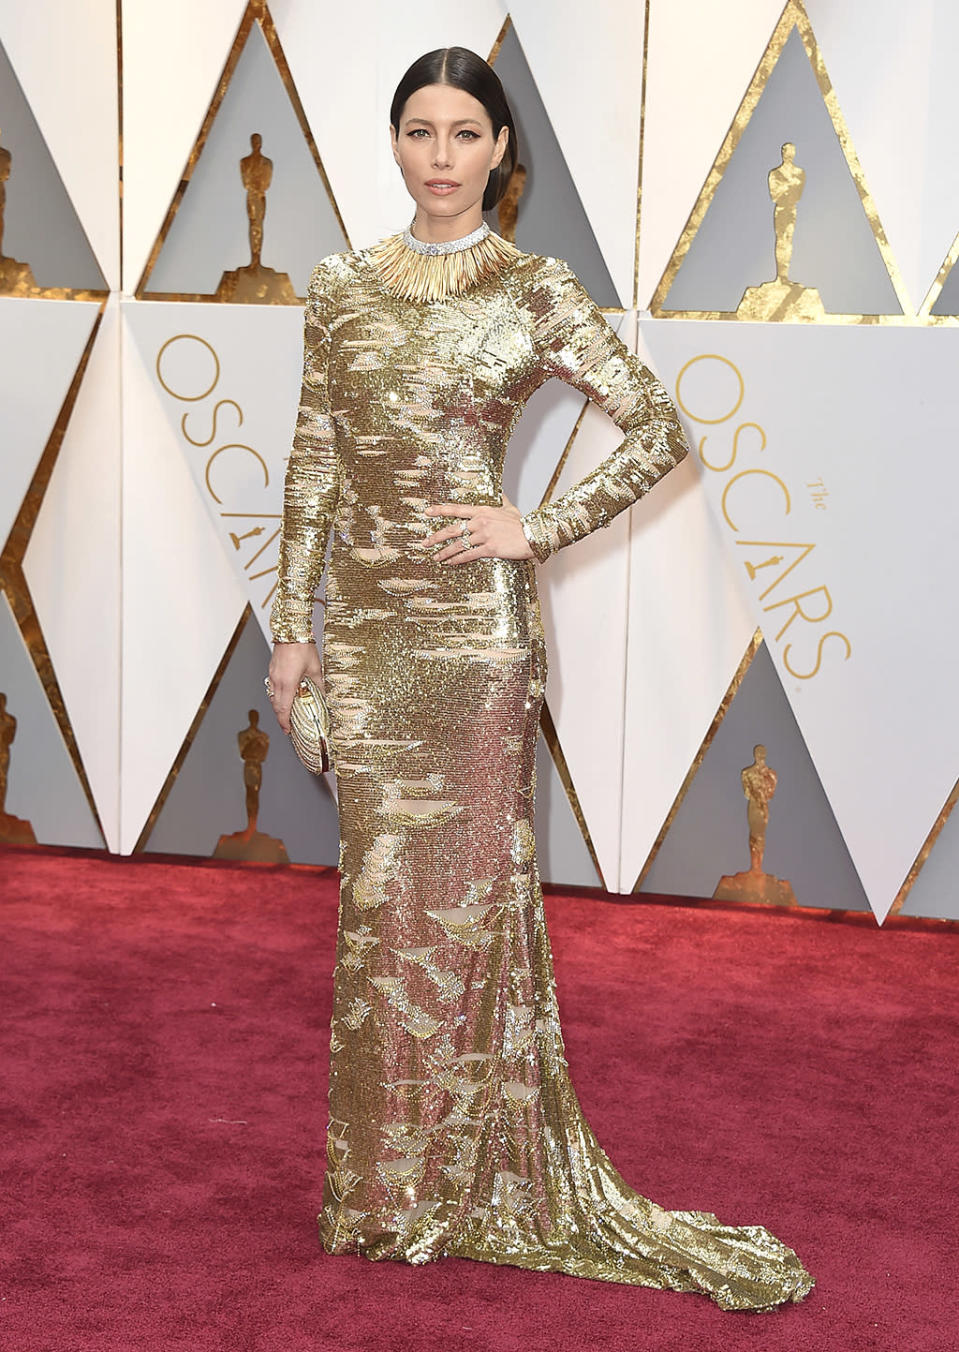 """<p>Jessica Biel steals the (pre-) show in this silver-and-gold KaufmanFranco sparkler with a Tiffany necklace. Or, as her date, her husband Justin Timberlake, remarked: """"I call it perfection, baby.""""<br> (Photo by Jordan Strauss/Invision/AP)<br><br><a rel=""""nofollow"""" href=""""https://www.yahoo.com/style/oscars-2017-vote-for-the-best-and-worst-dressed-225105125.html"""" data-ylk=""""slk:Go here to vote for best and worst dressed.;outcm:mb_qualified_link;_E:mb_qualified_link;ct:story;"""" class=""""link rapid-noclick-resp yahoo-link"""">Go here to vote for best and worst dressed.</a> </p>"""